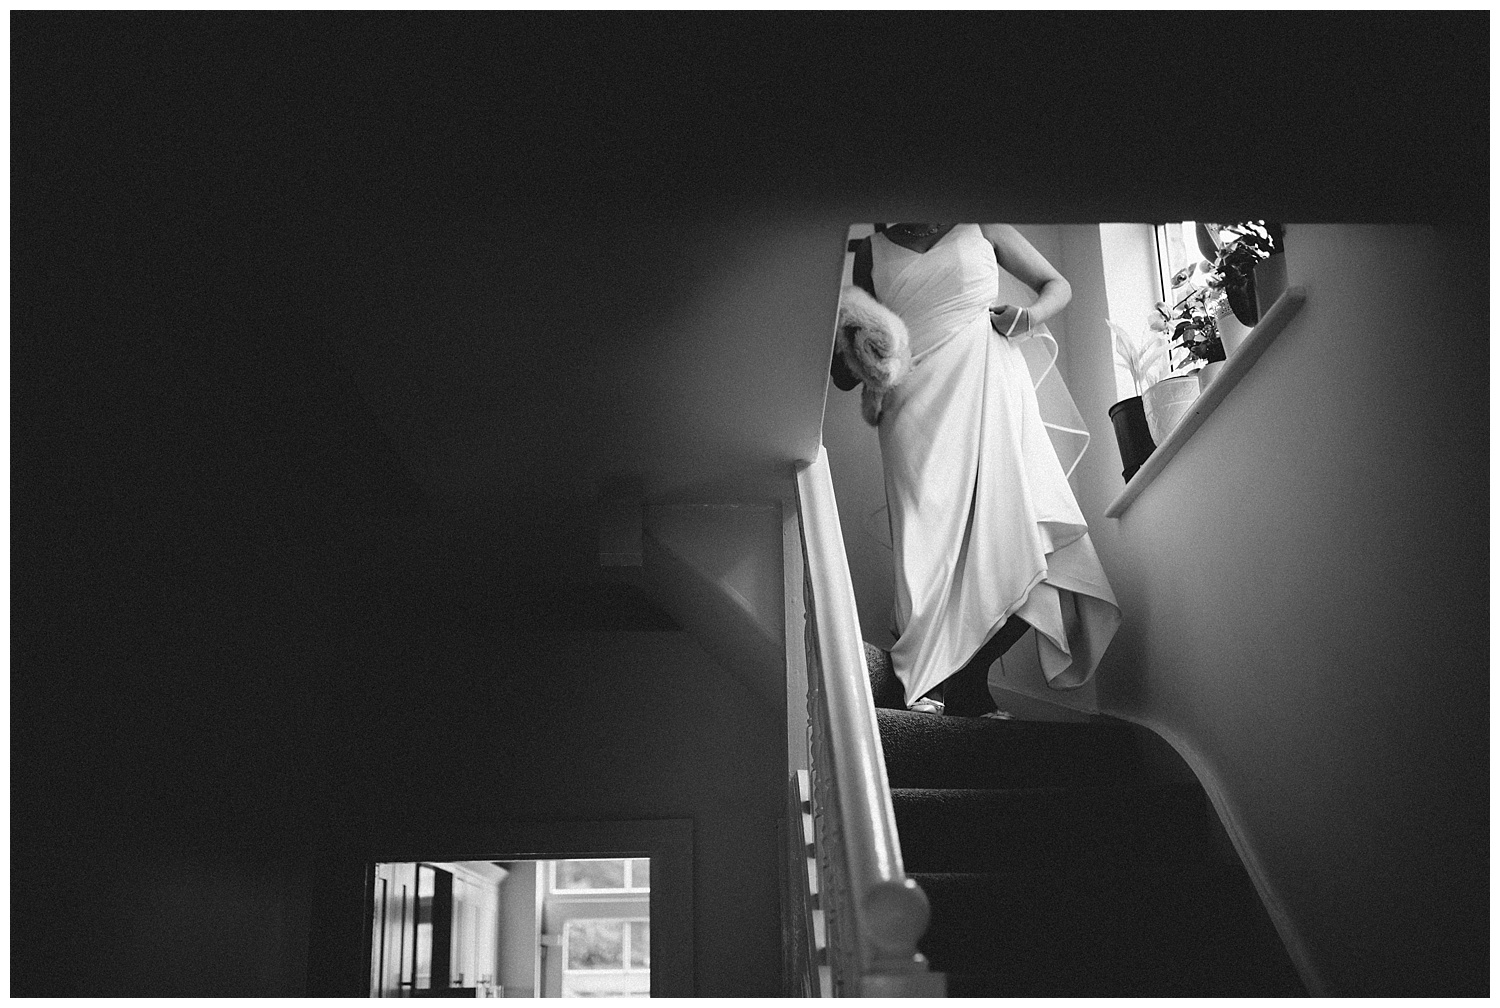 Bride coming down stairs during bridal preparation with her wedding dress on